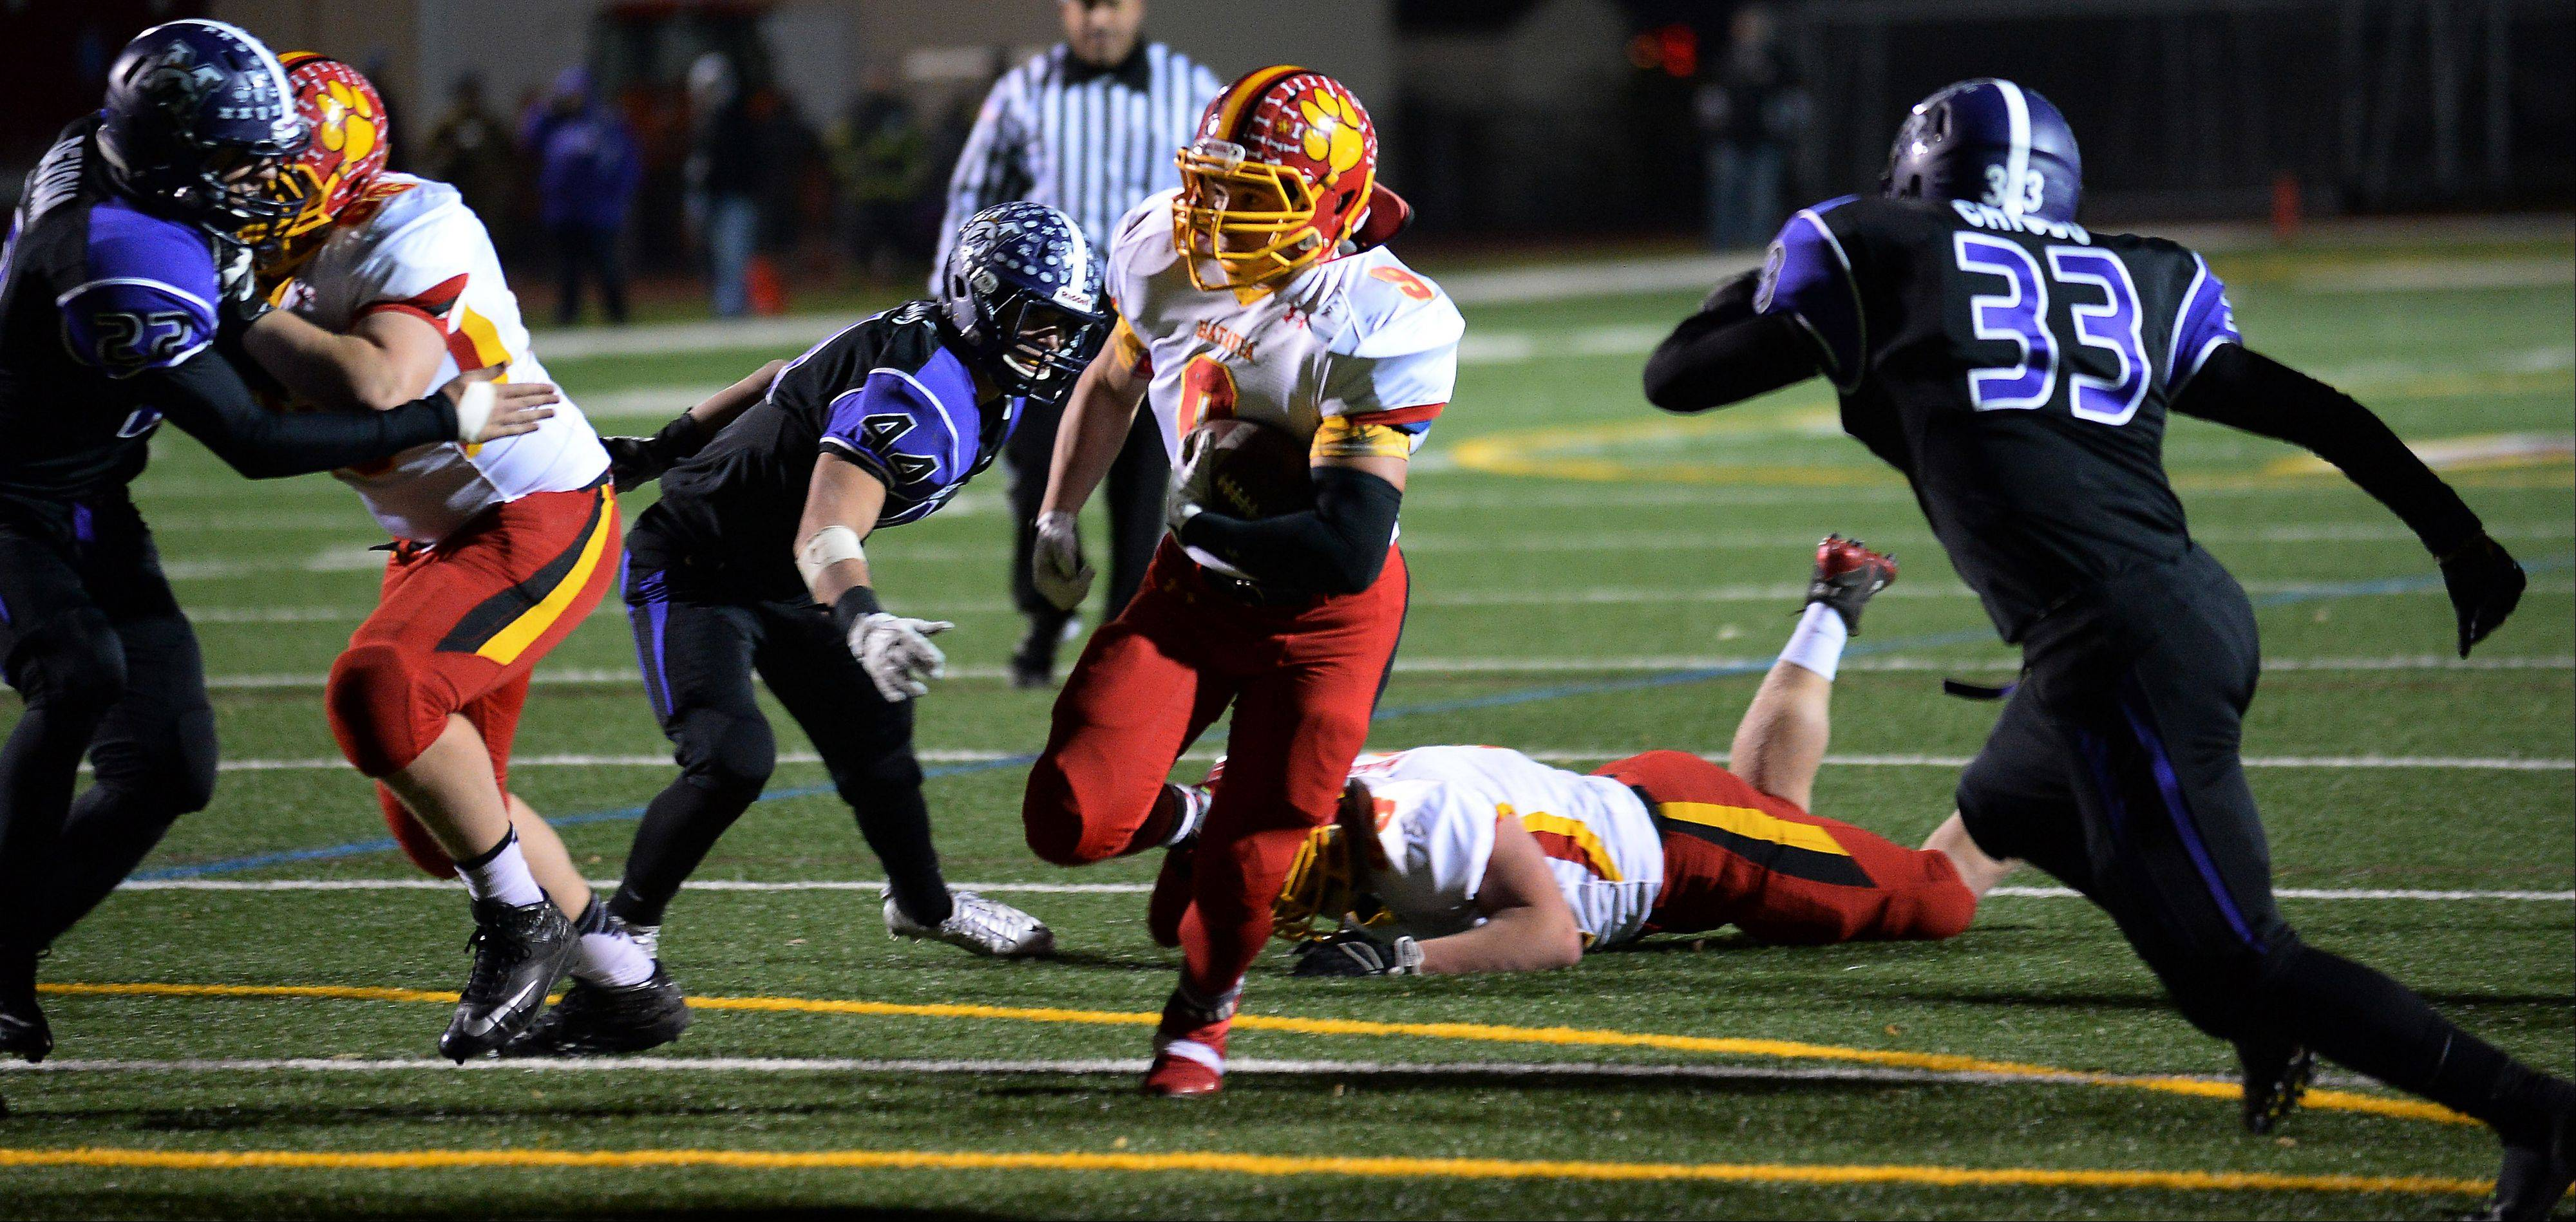 Batavia's Anthony Moneghini runs past Rolling Meadows' Nico Chiodo in the fourth quarter for a touchdown.